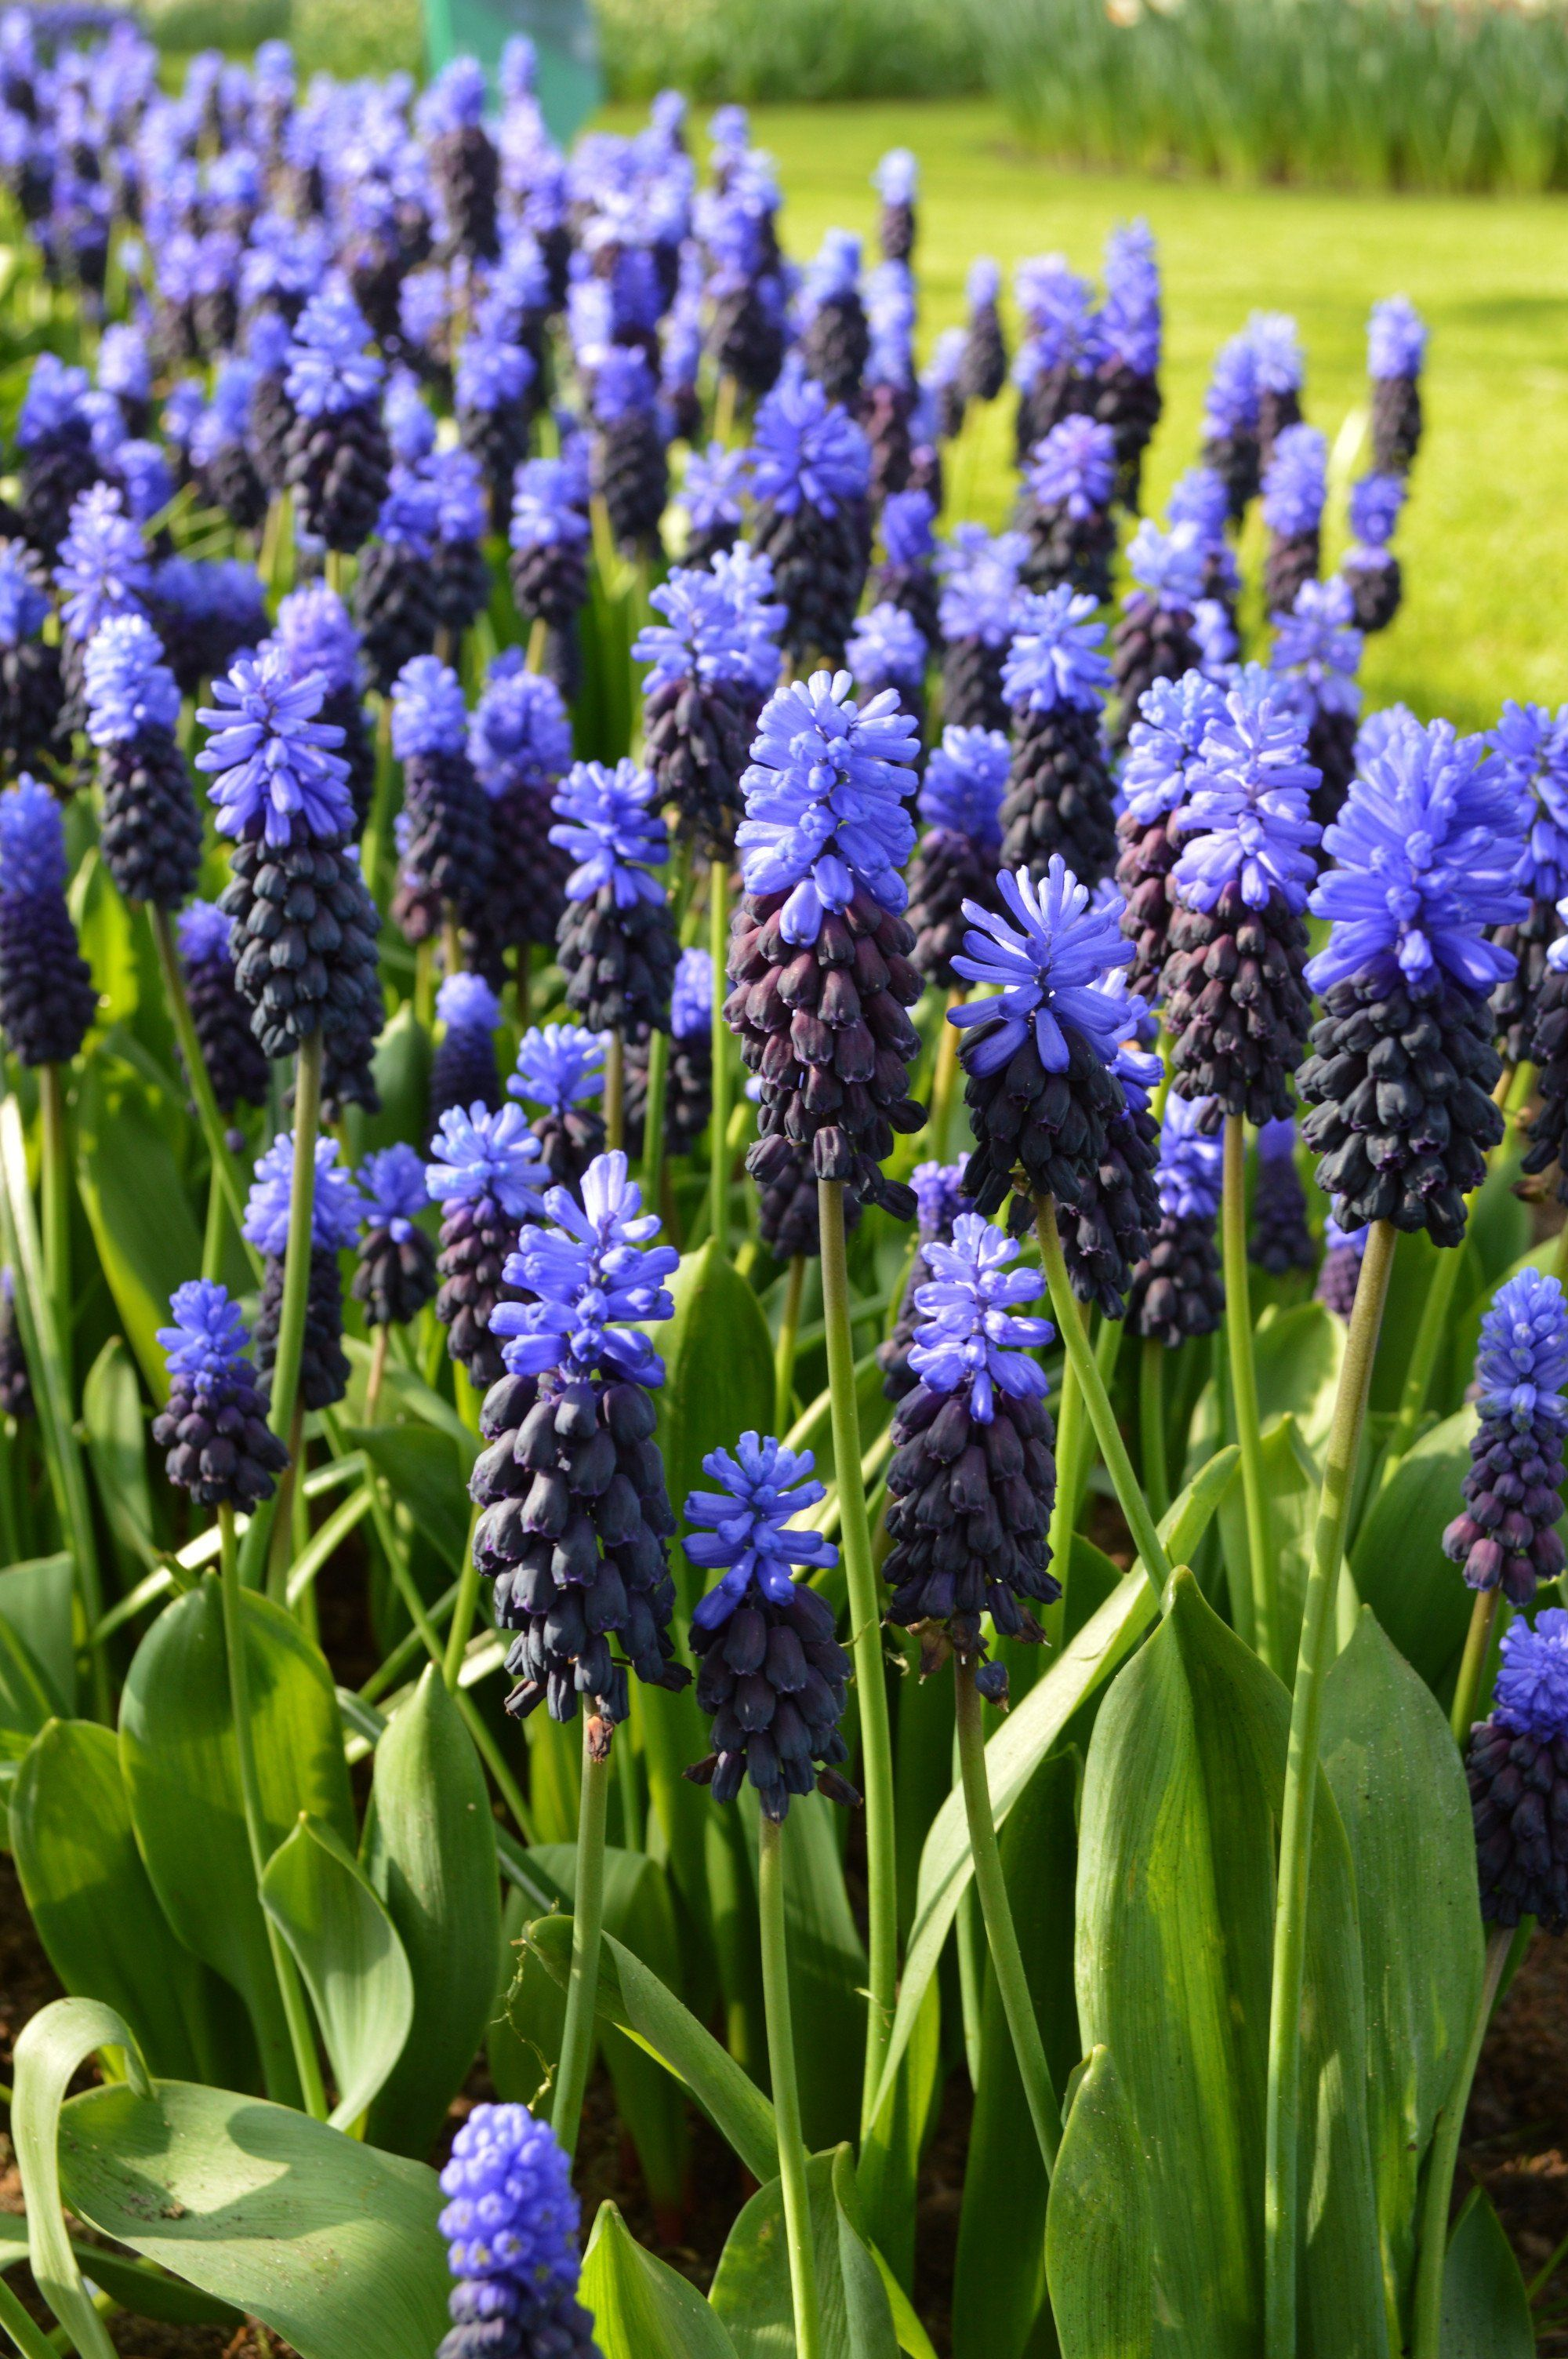 Muscari Latifolium Grape Hyacinth Landscaper Special Bulb Flowers Muscari Plant Flower Bulbs